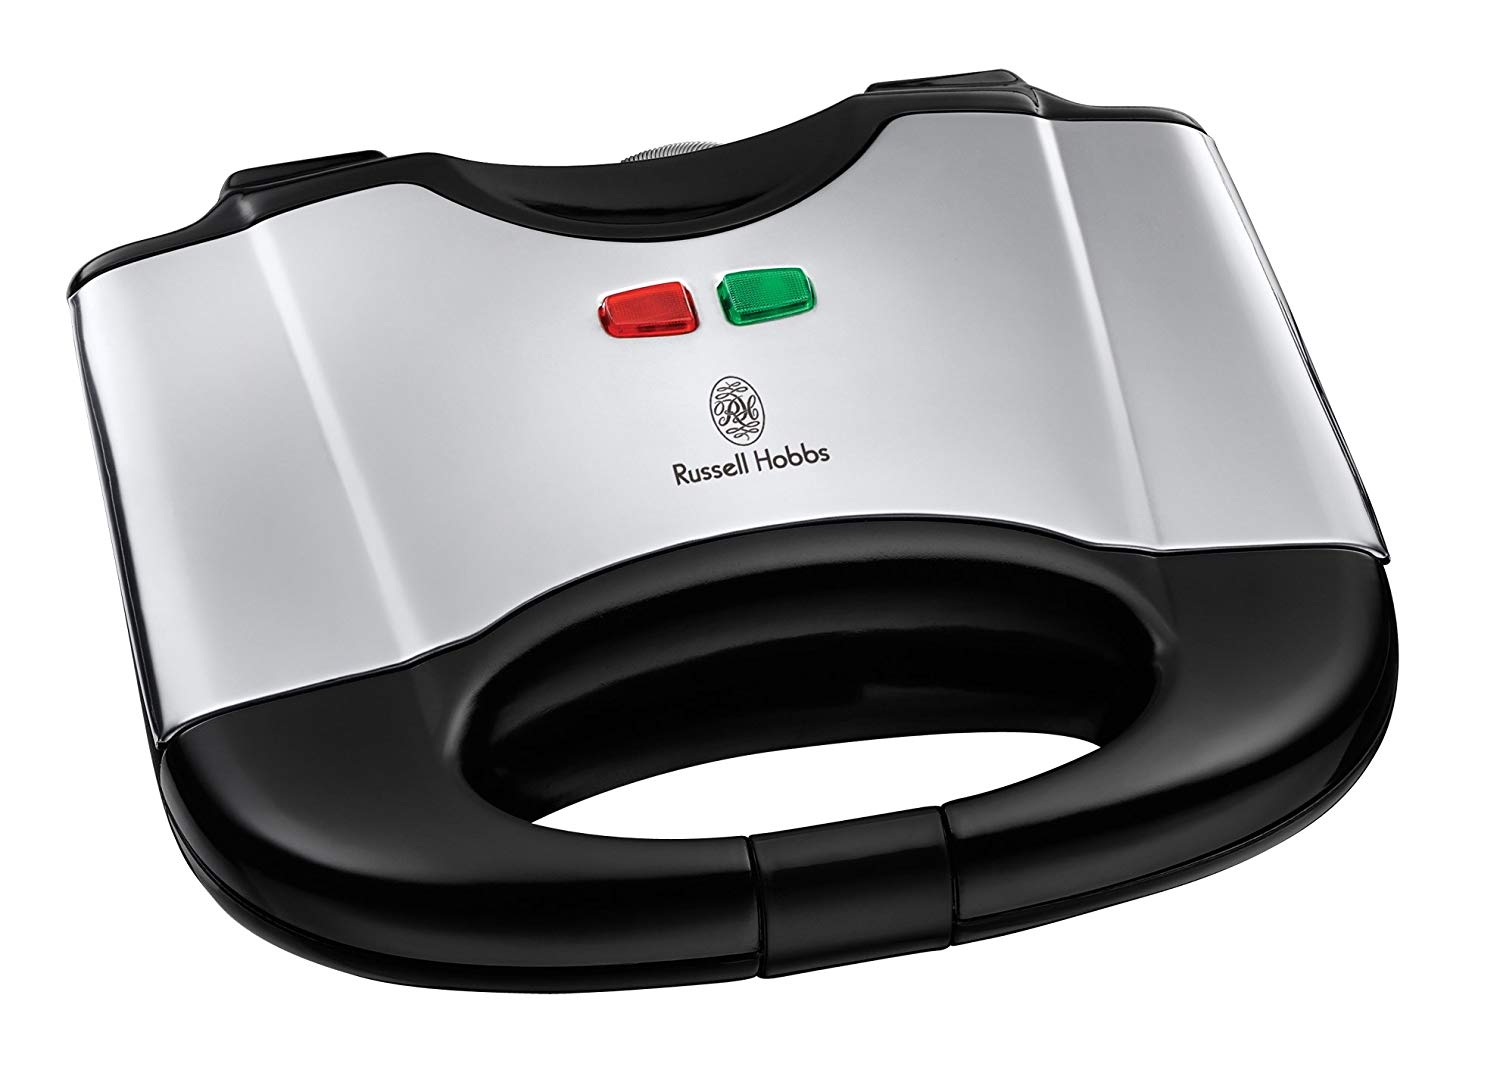 Russell Hobbs 2-Portion Sandwich Toaster 17936 – Stainless Steel